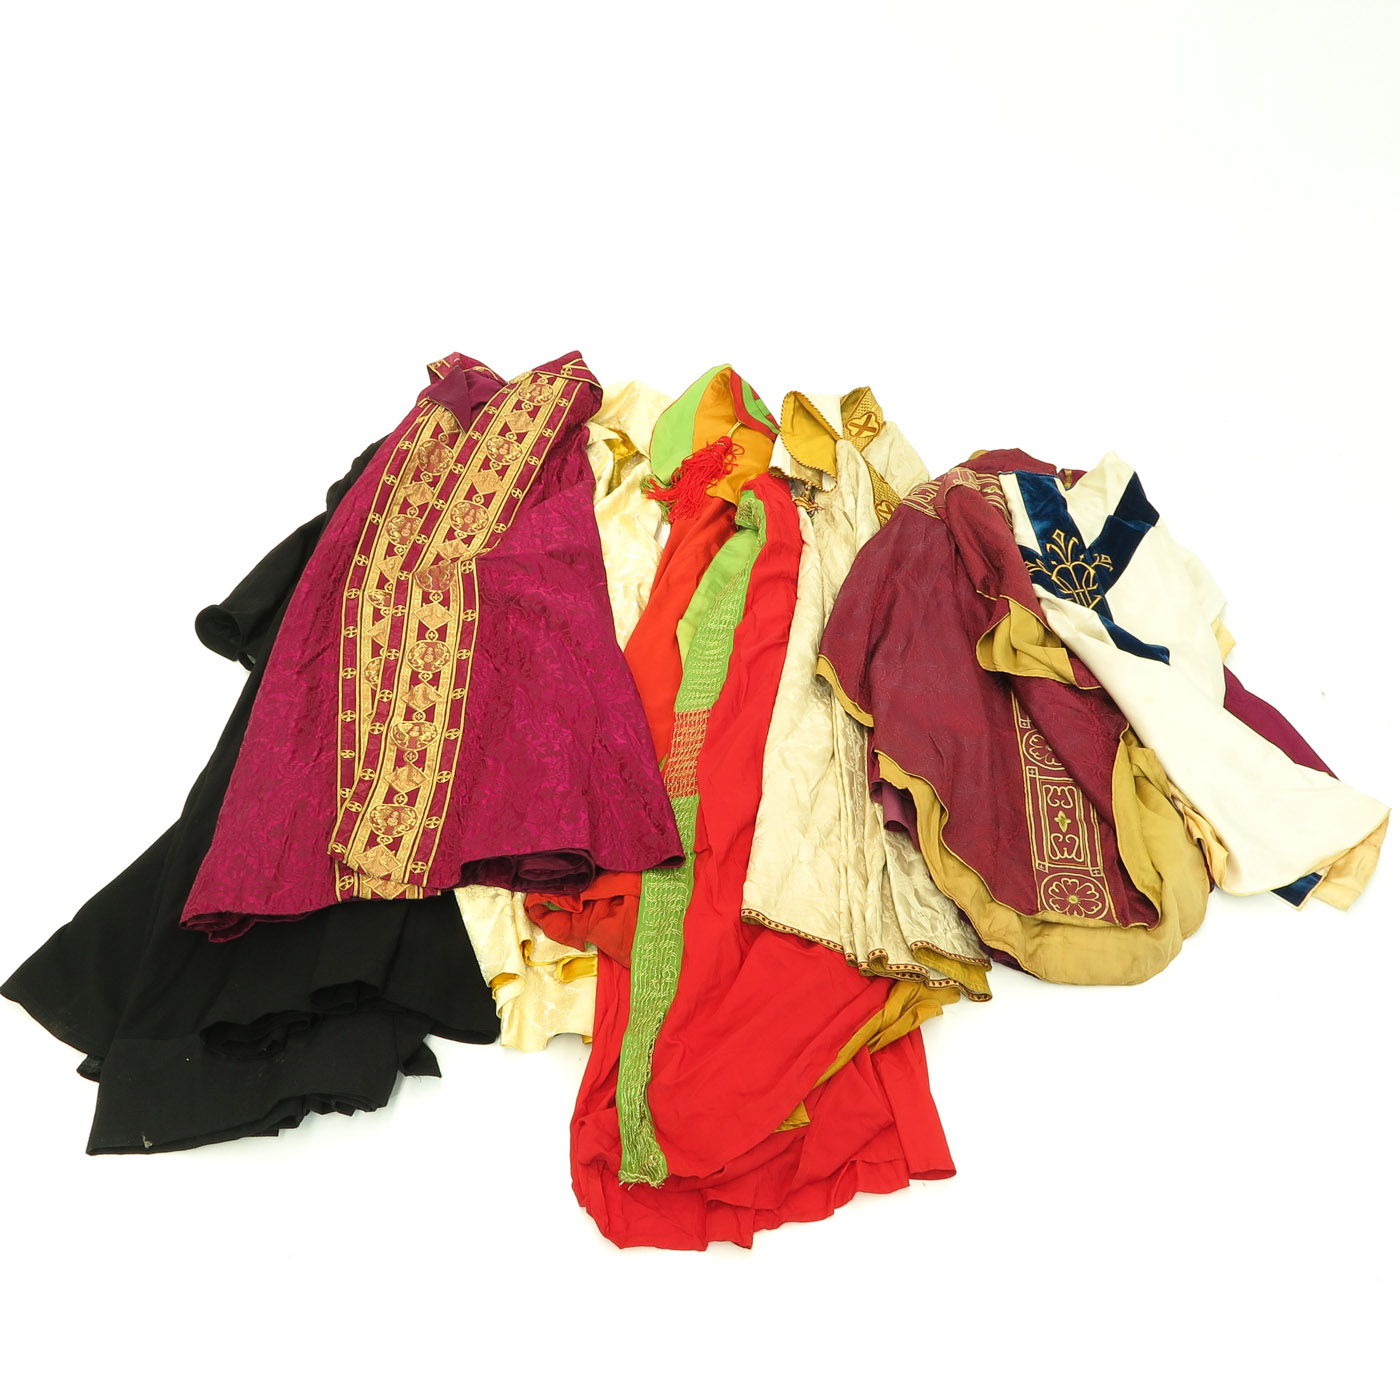 Lot 1449 - A Collection of Religious Clothing